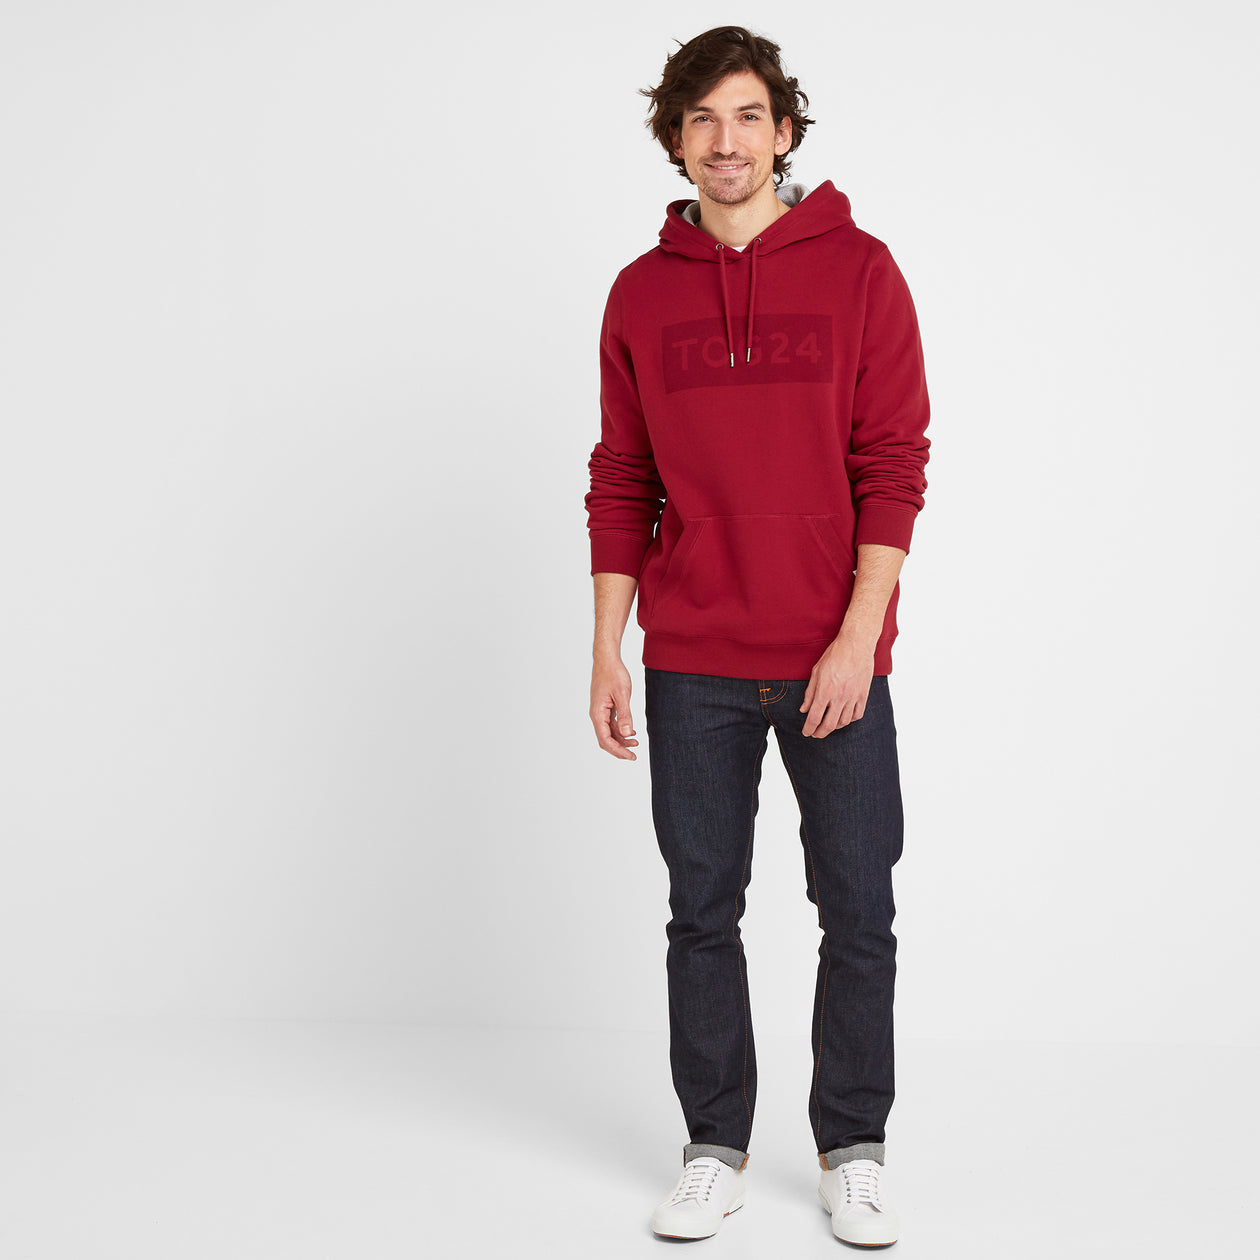 Stowgate Mens Hoody - Rio Red image 4